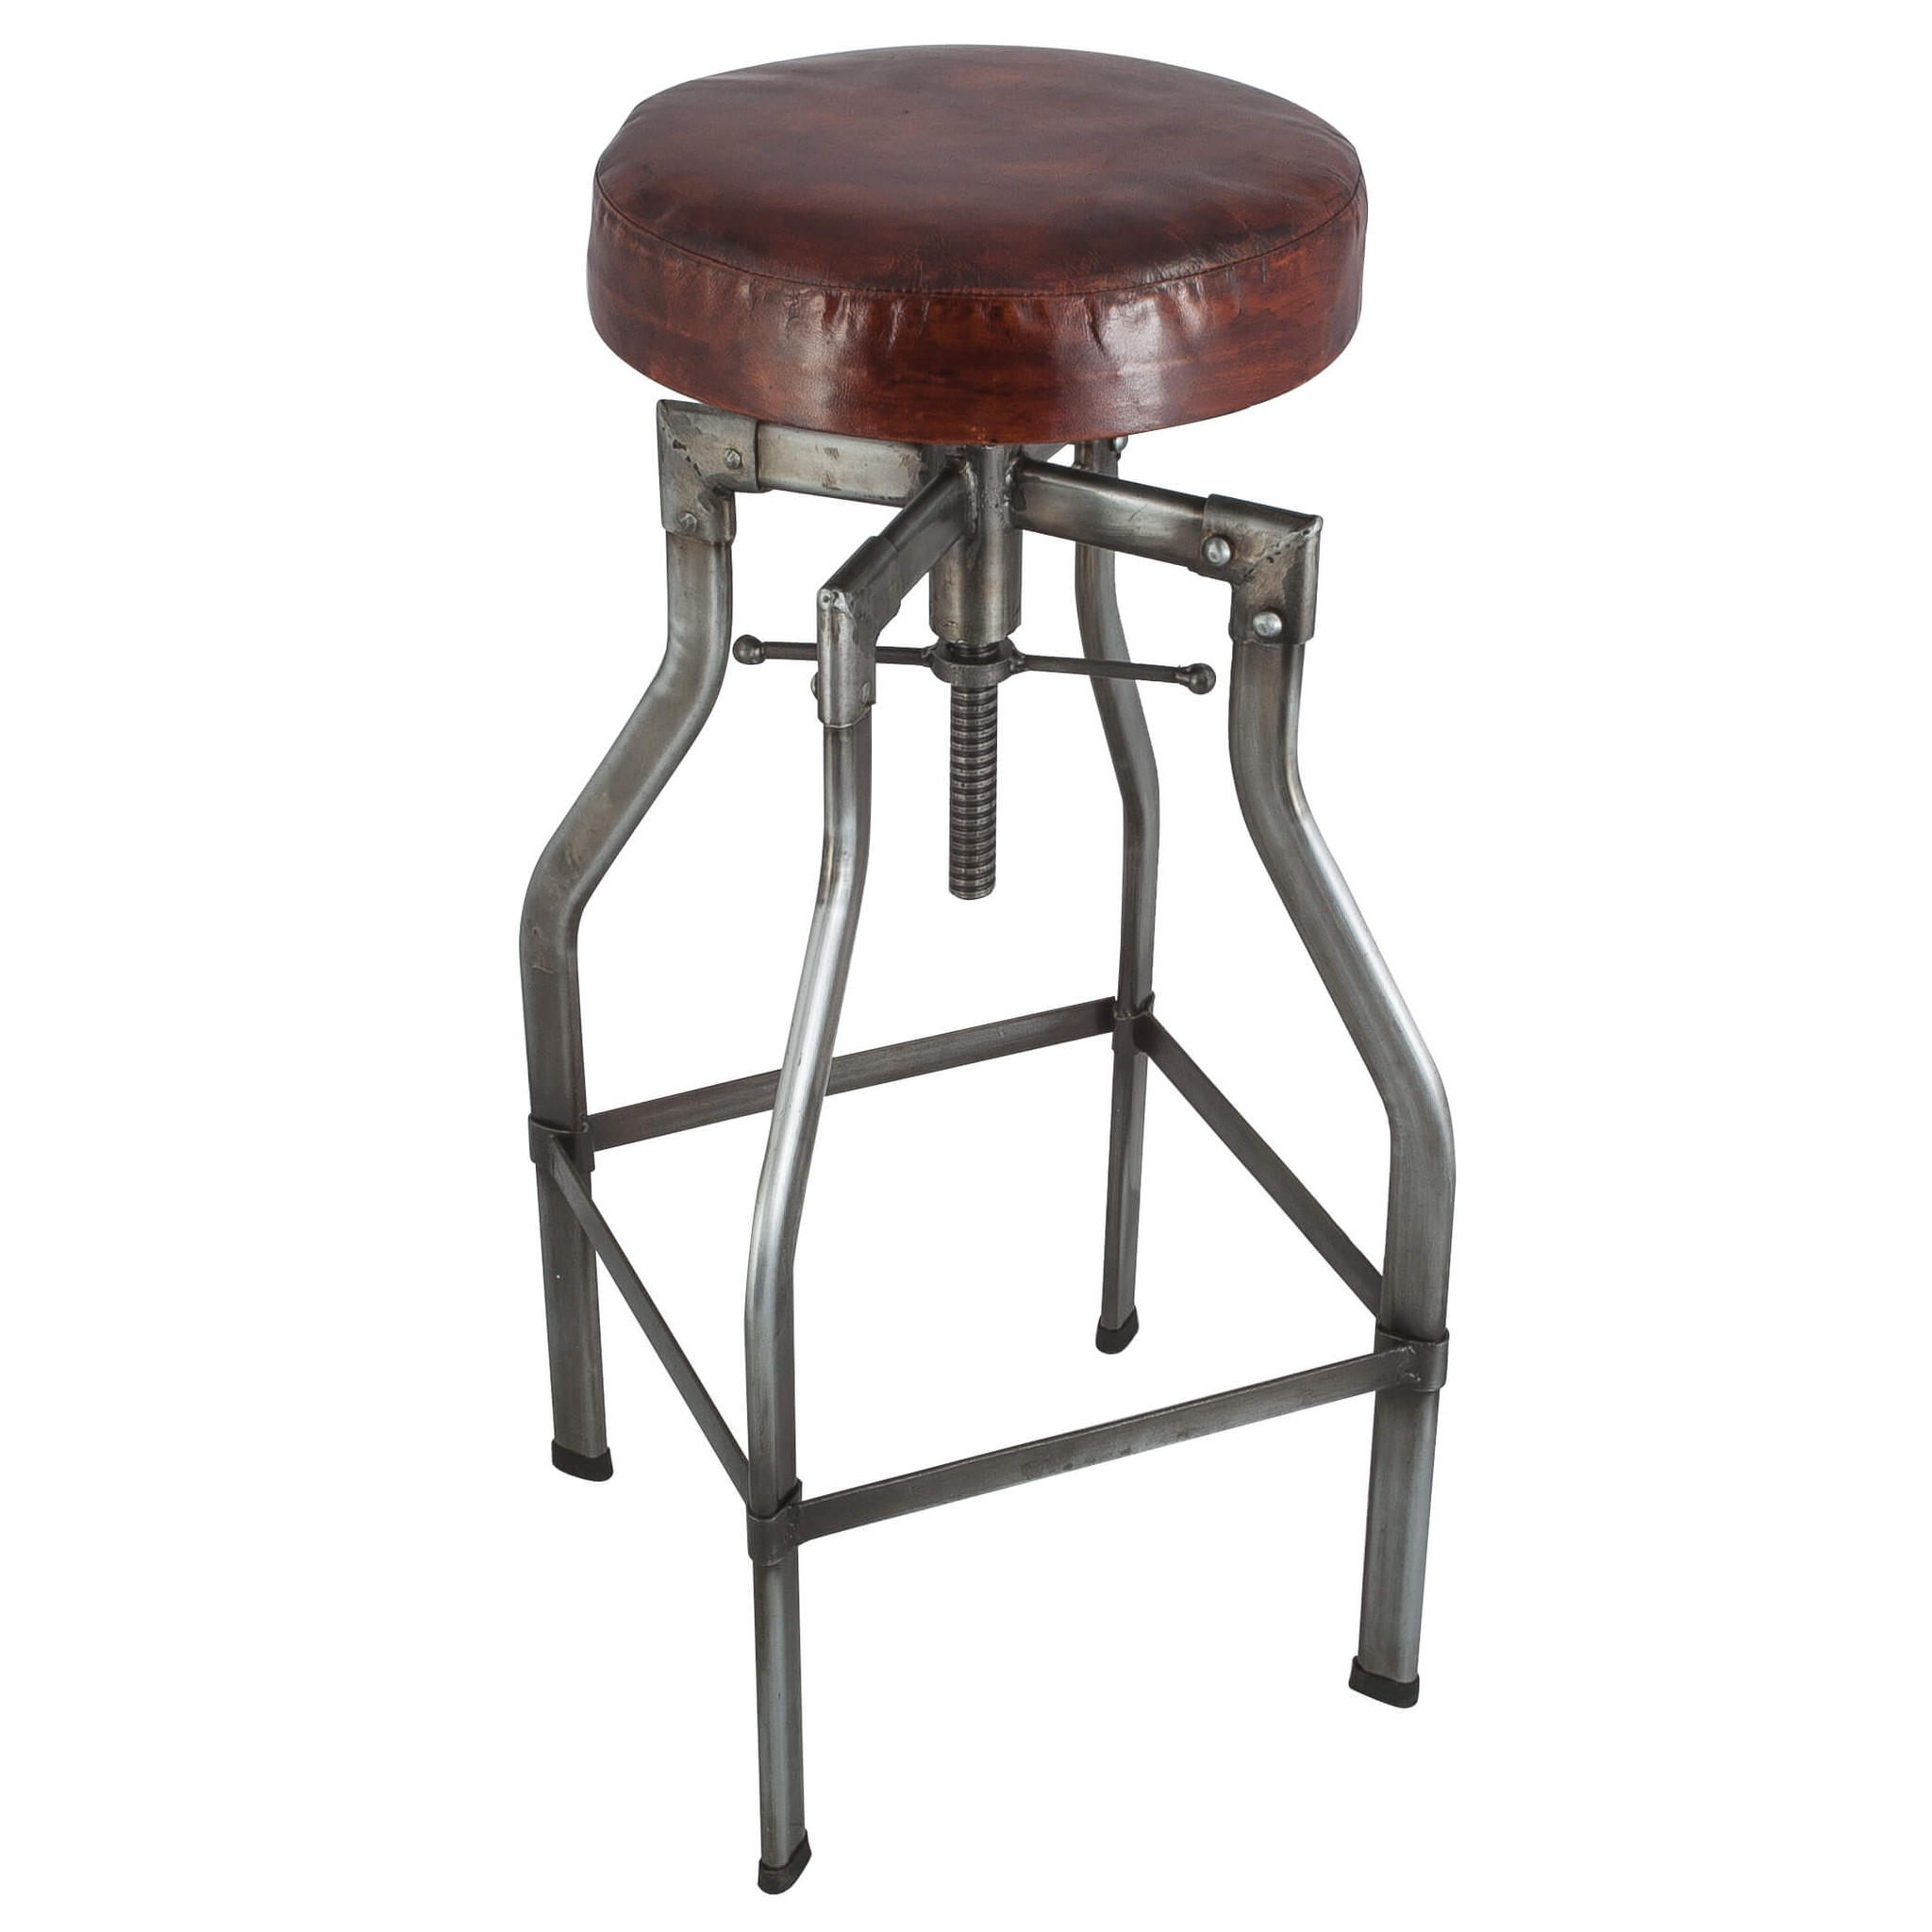 Turner Vintage Real Leather Industrial Style Bar Stools  sc 1 st  HomesFeed & Awesome Industrial Style Bar Stools | HomesFeed islam-shia.org